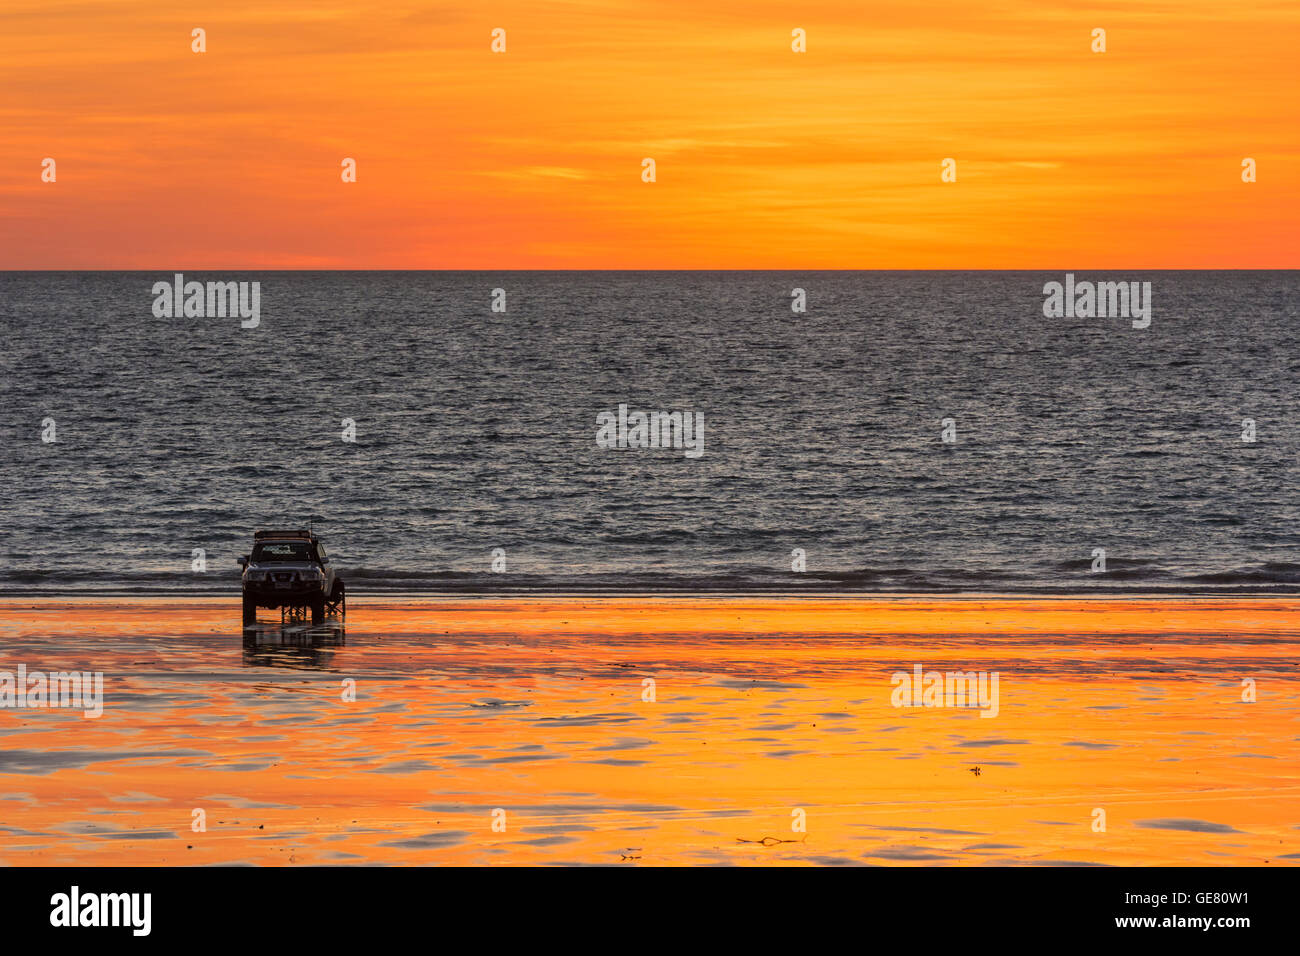 A four wheel drive vehicle parked on Cable Beach at sunset, Broome, Kimberley, Western Australia, Australia - Stock Image